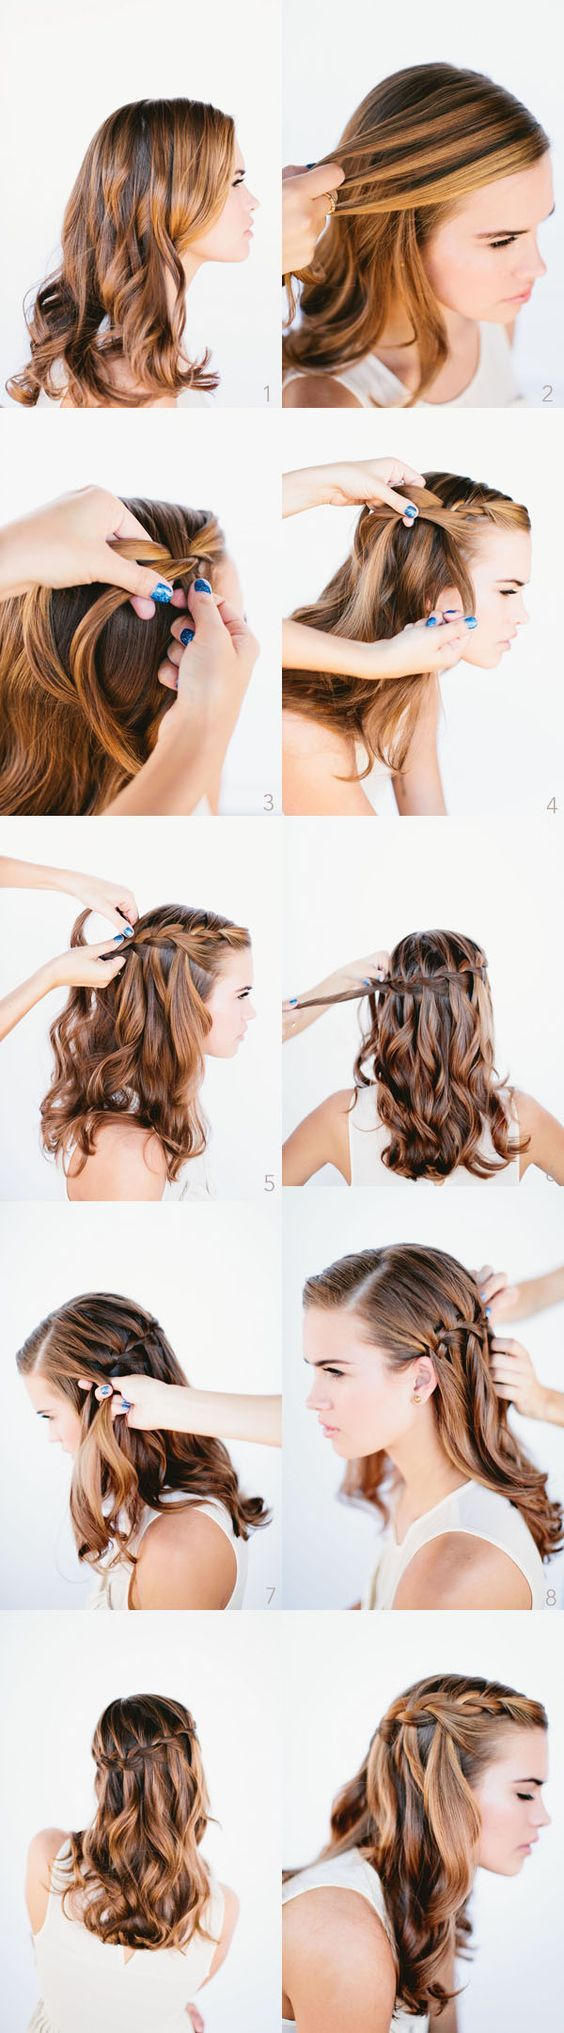 Waterfall Braid Tutorial This Looks Like A Cute One For Little Girls As  Well